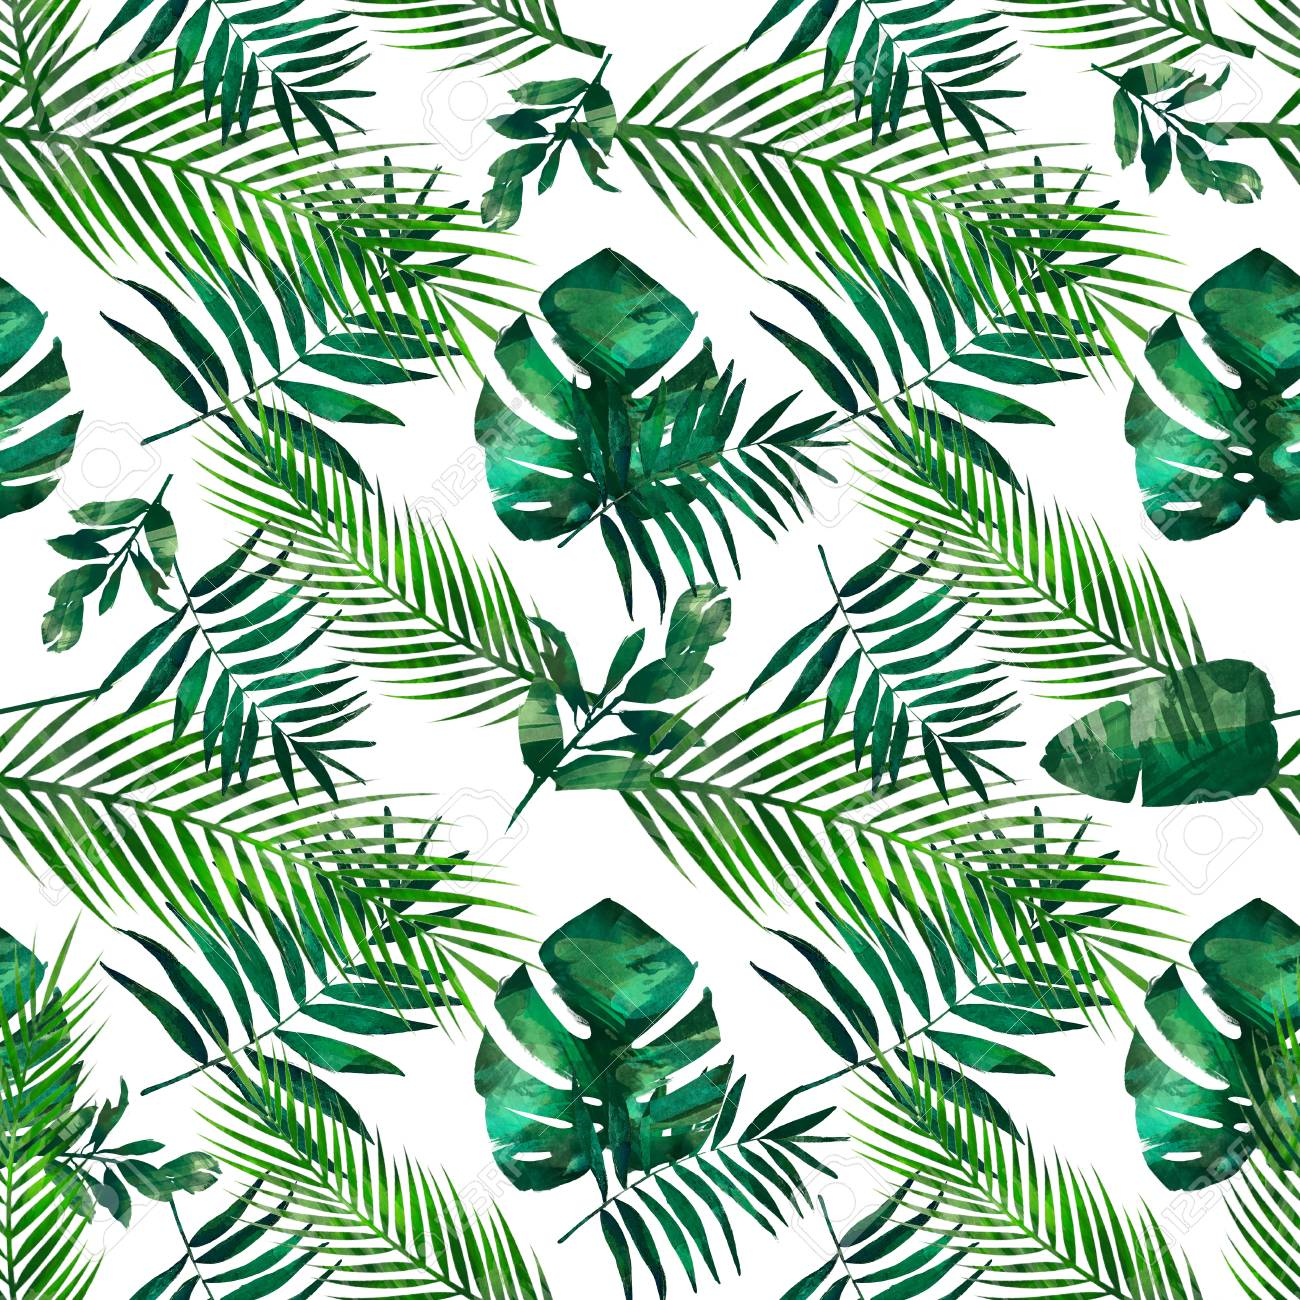 Watercolor Seamless Floral Pattern Texture With Tropical Leaves Stock Photo Picture And Royalty Free Image Image 120599481 Crotons are colorful tropical plants with either thin leaves or broad leaves, but typically bright too see any of these tropical plants just drop by the nursery. watercolor seamless floral pattern texture with tropical leaves